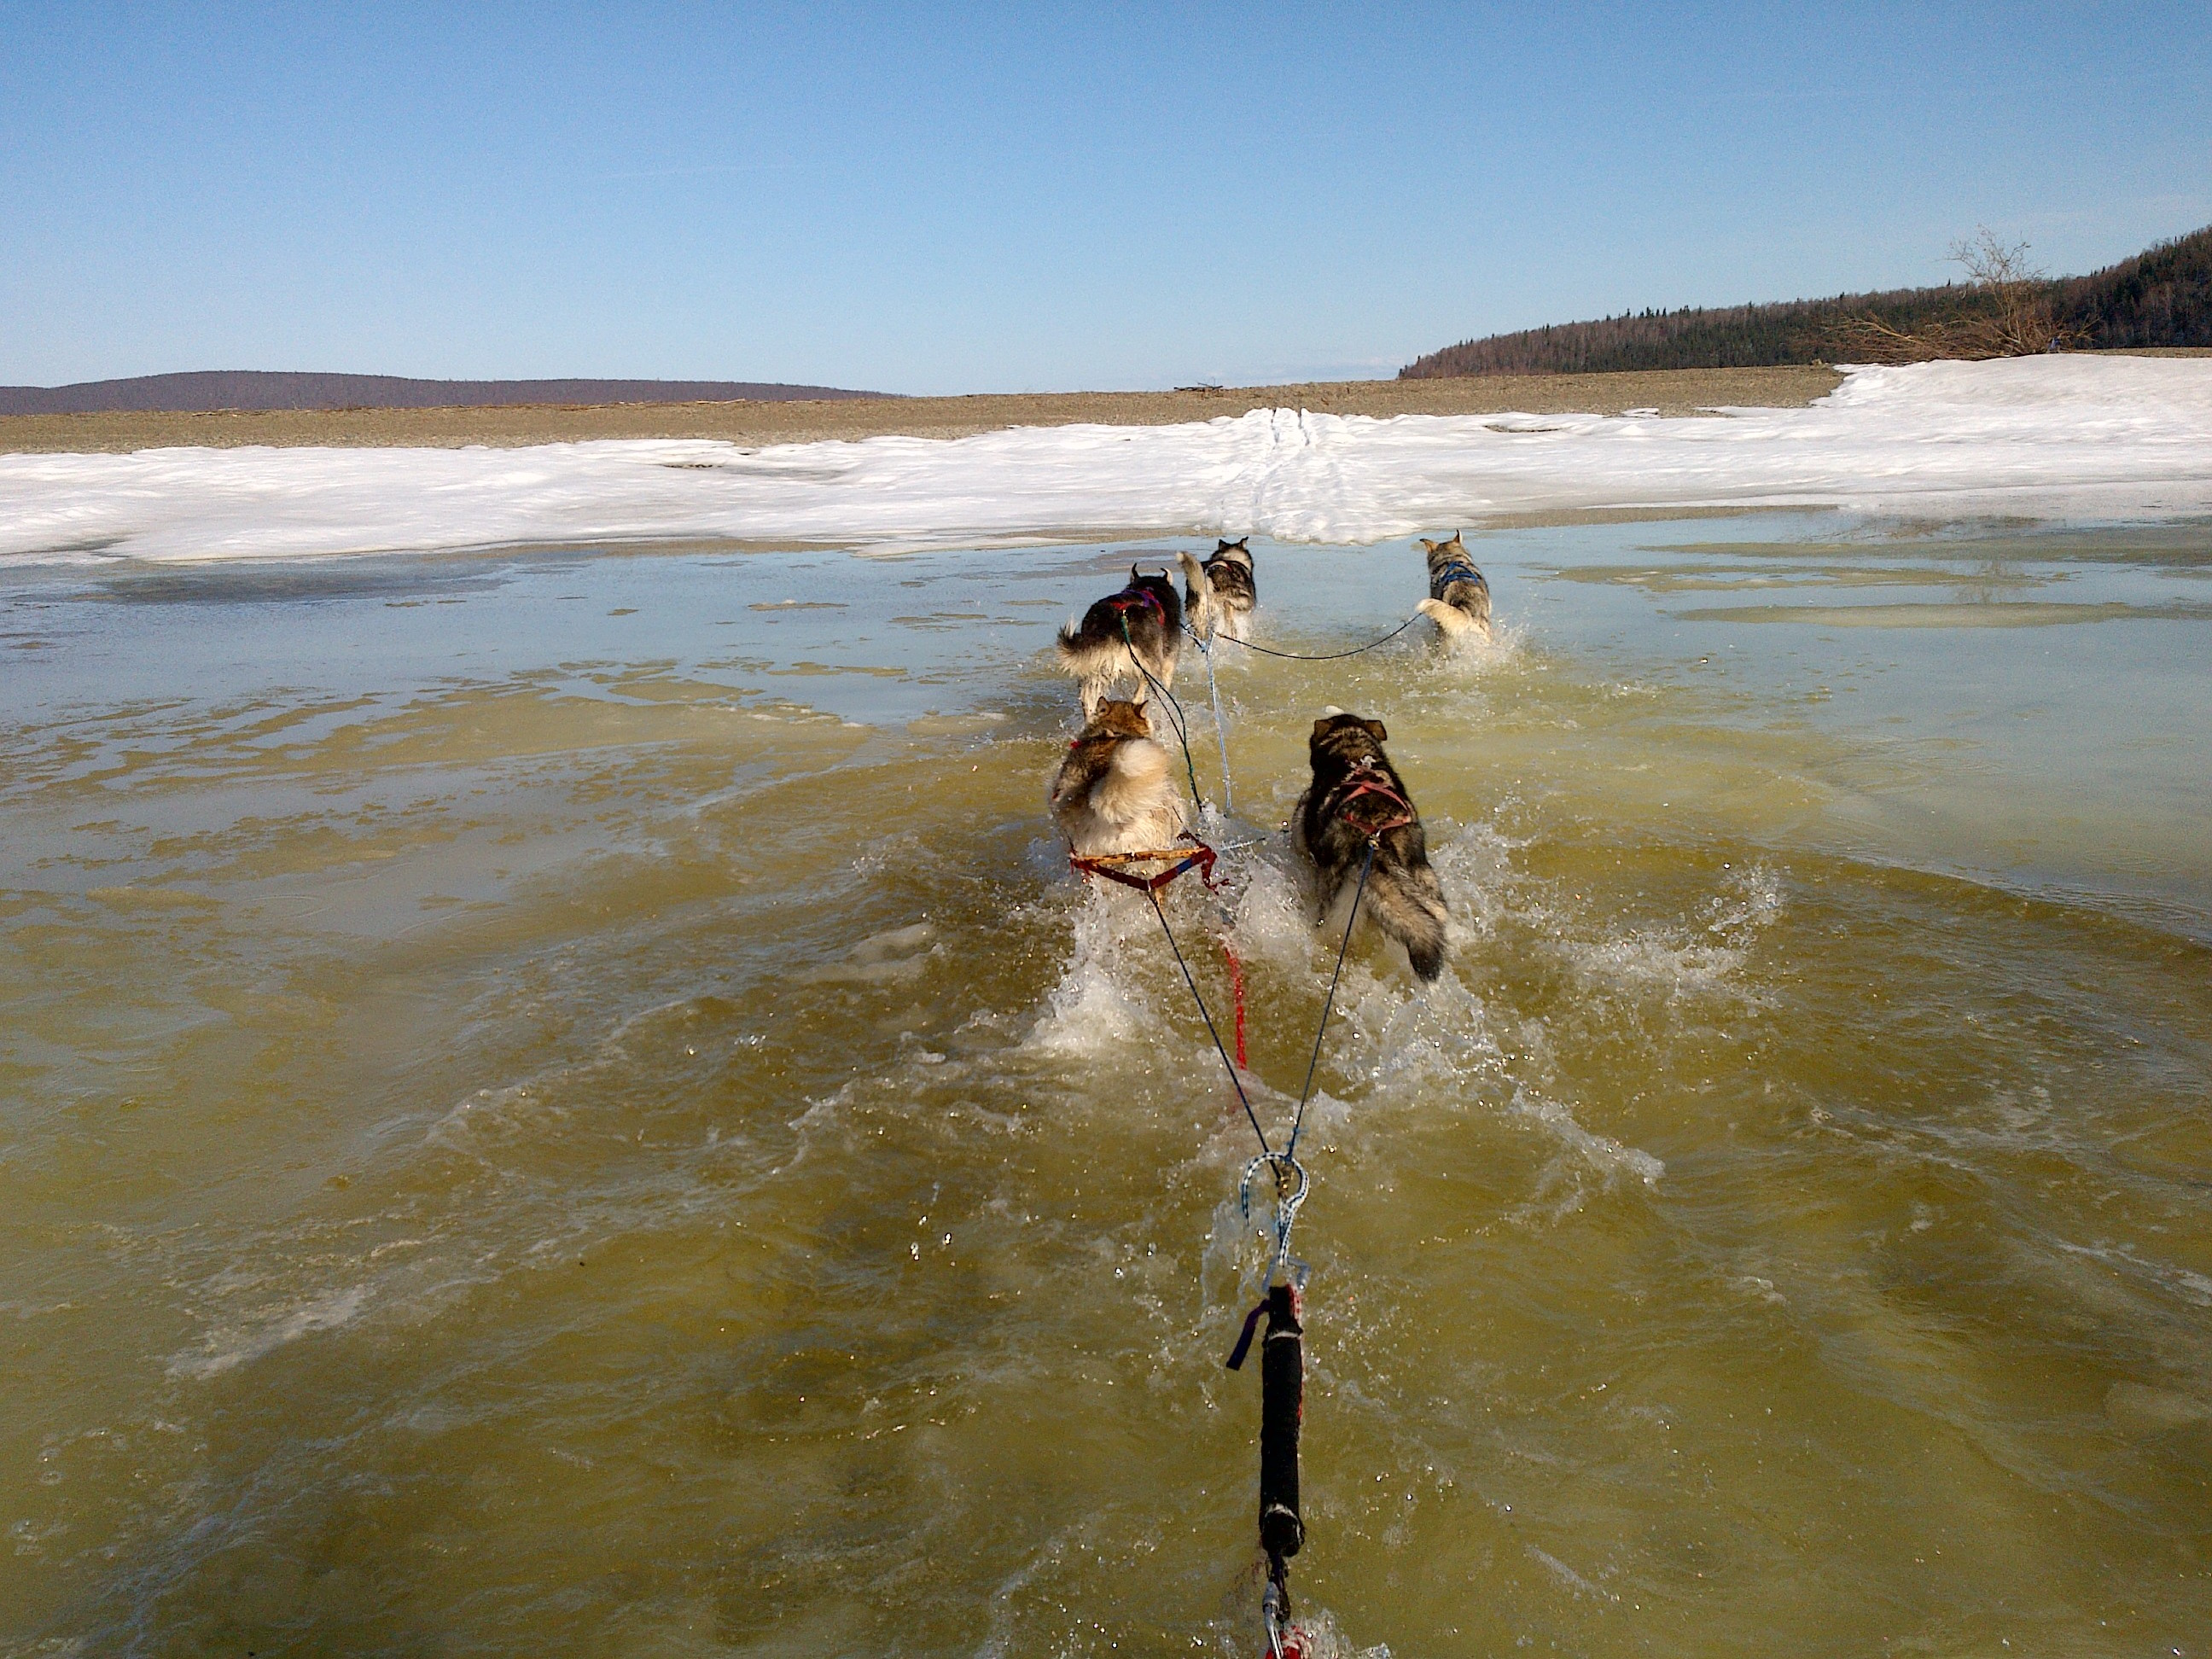 sled dogs swim a sled across a river